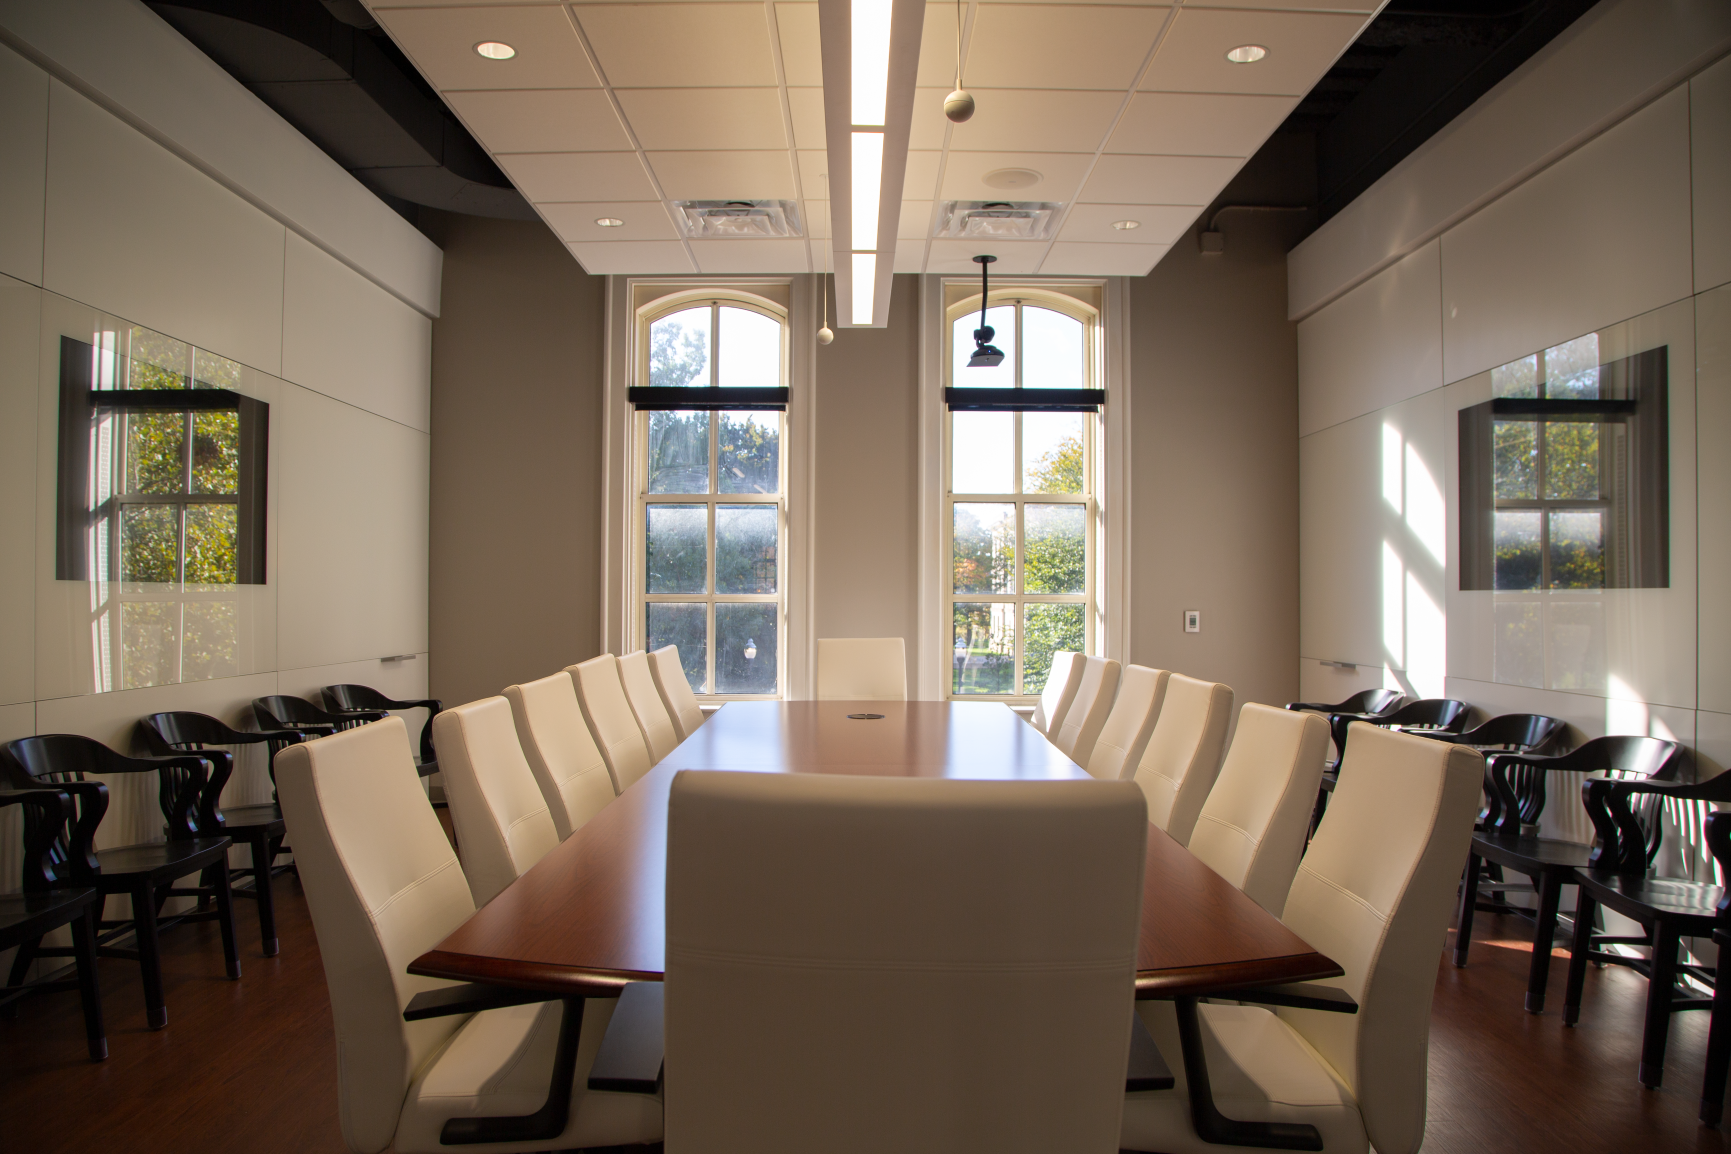 Modern, ergonomic chairs meet timeless, traditional style in this large conference room.